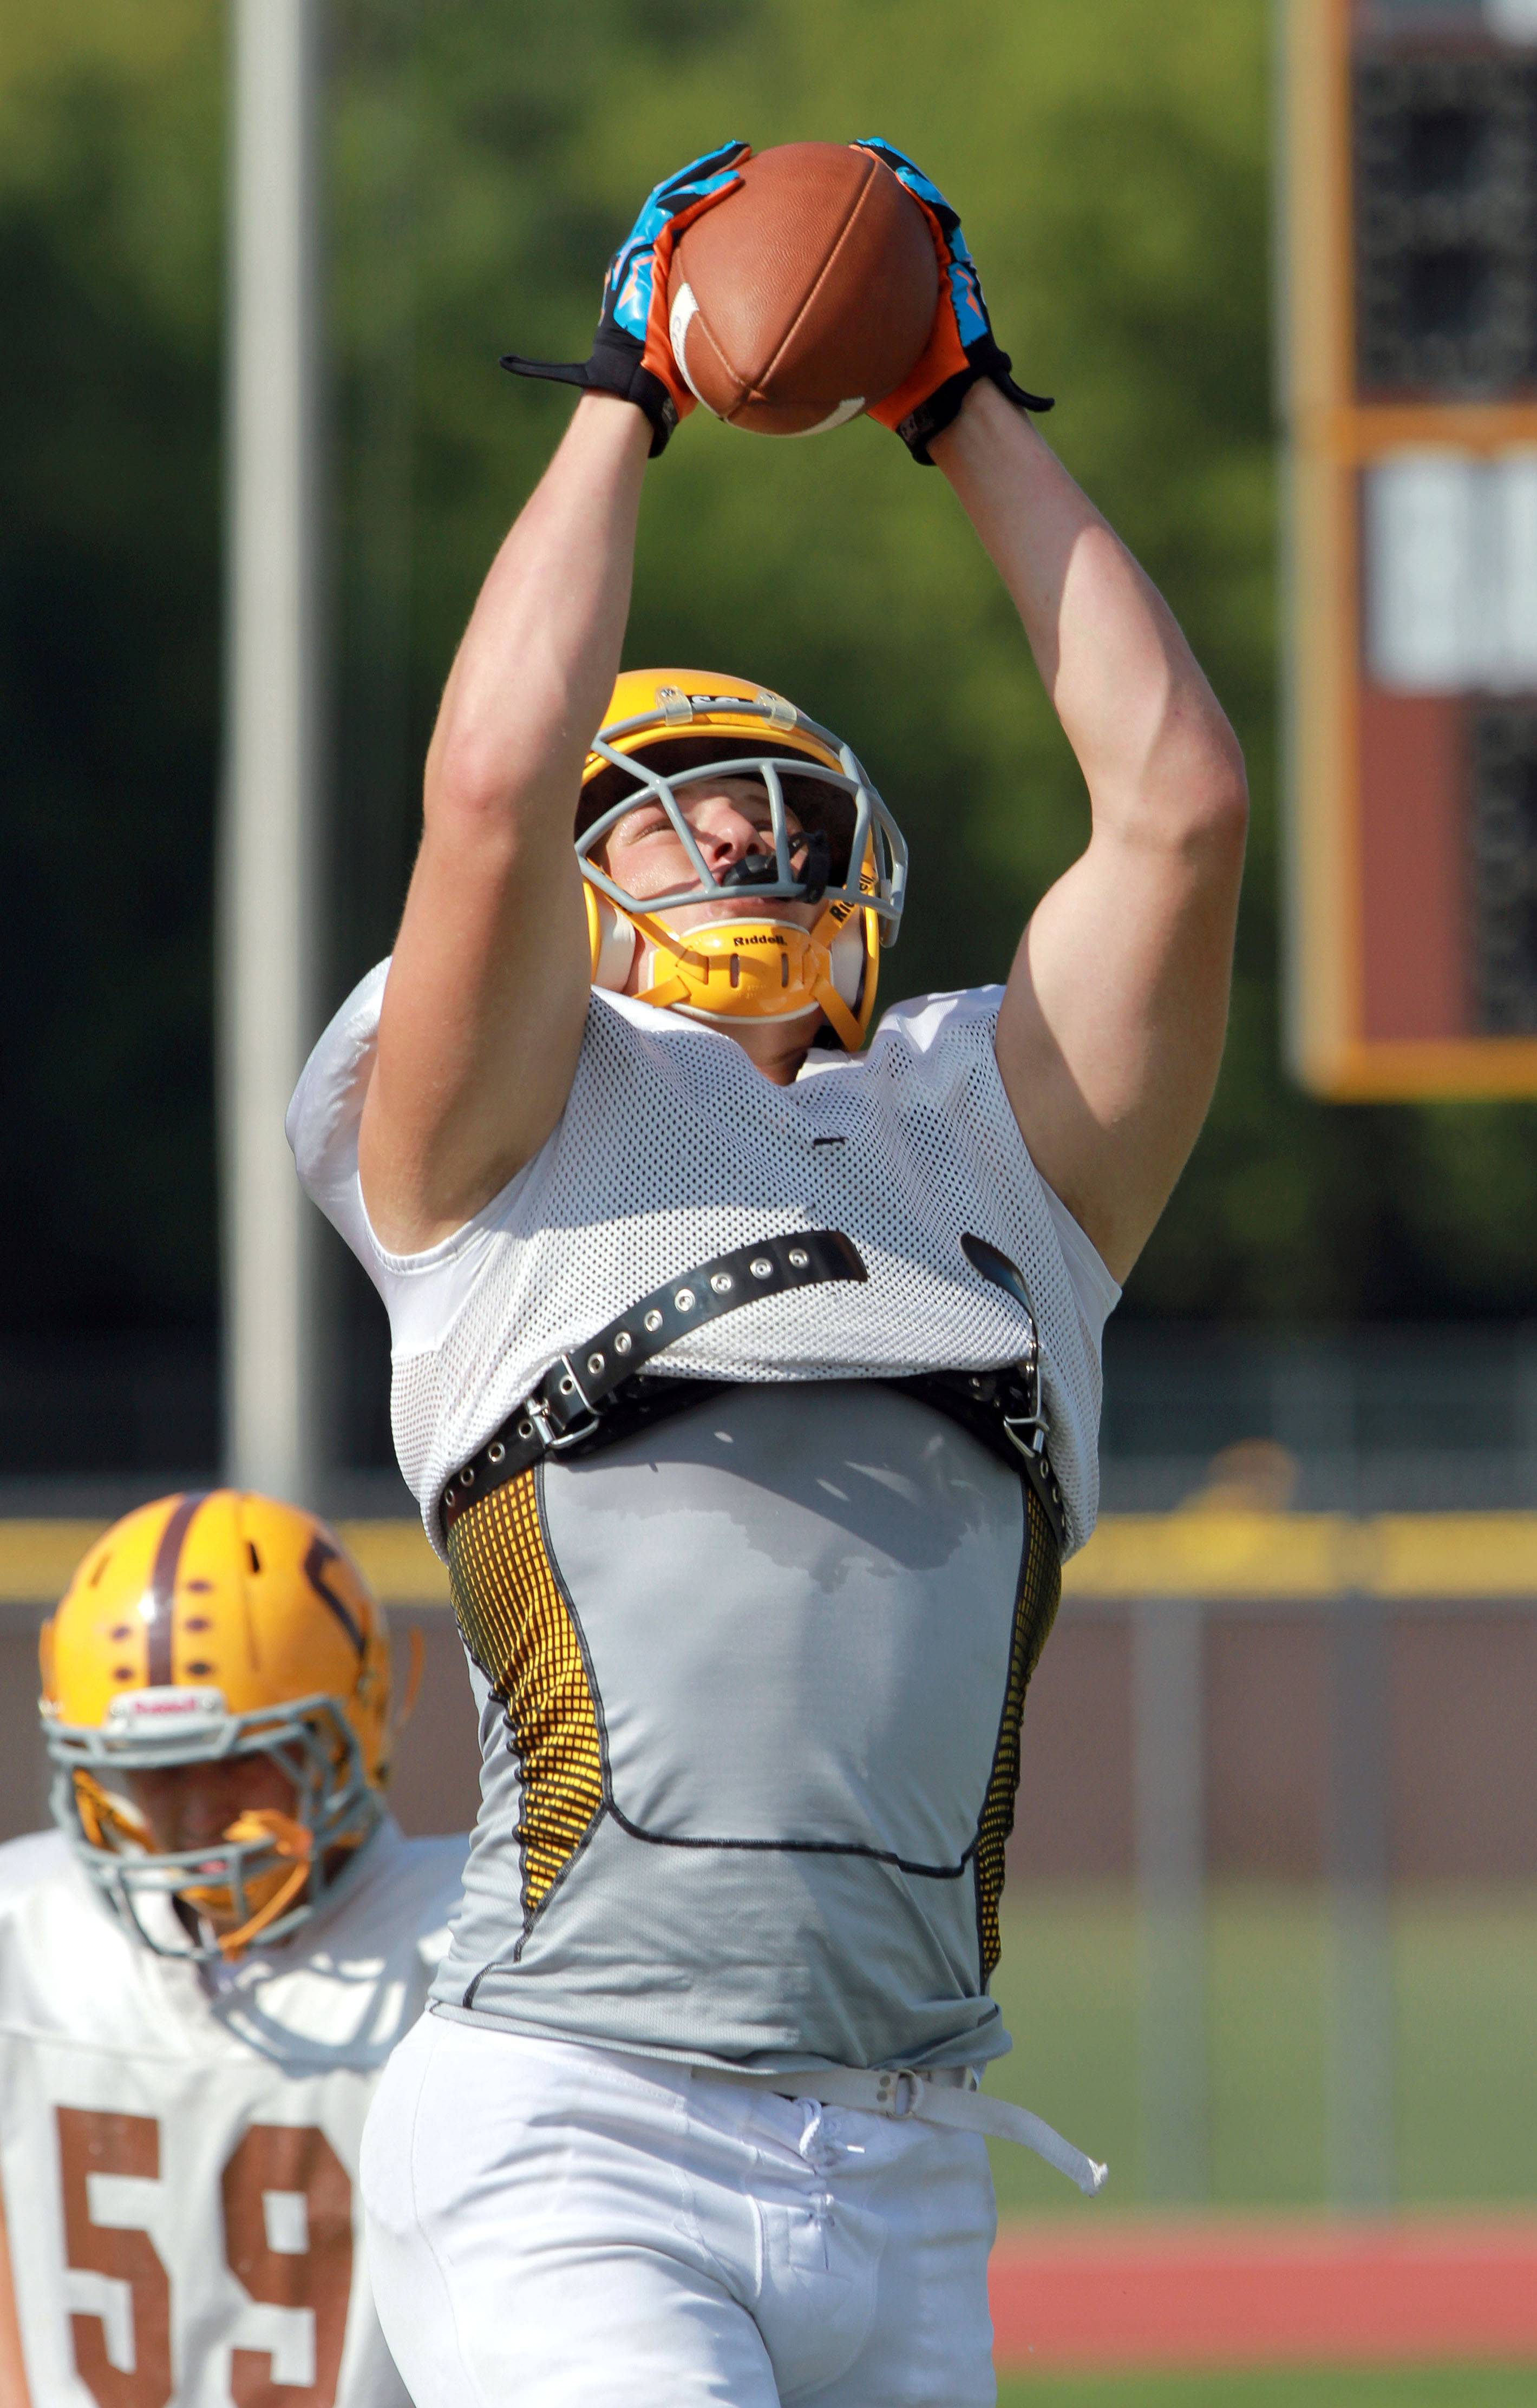 TE Noah Turner goes up for a catch during football practice Tuesday at Carmel High School in Mundelein.